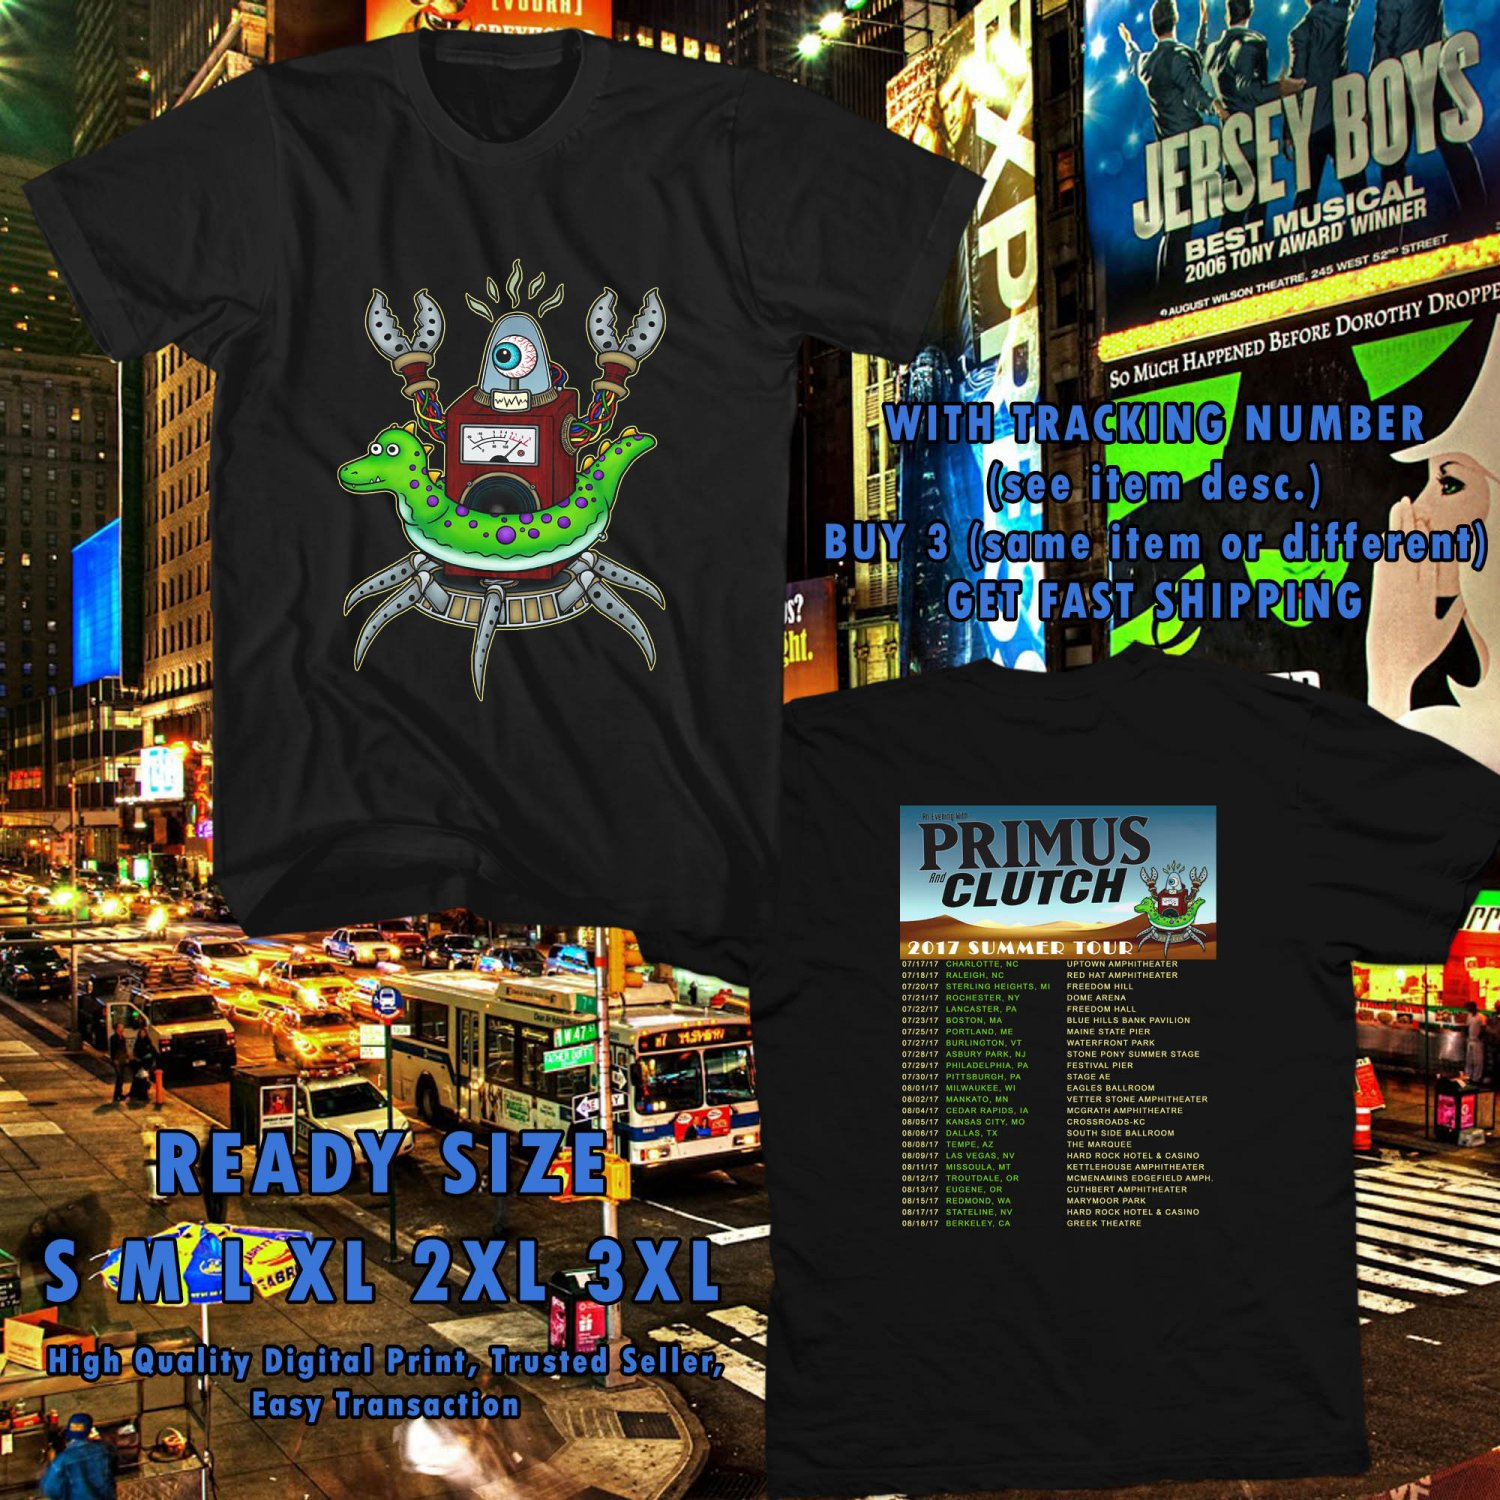 NEW AN EVENING WITH PRIMUS AND CLUTCH SUMMER TOUR 2017 black TEE W DATES DMTR 225